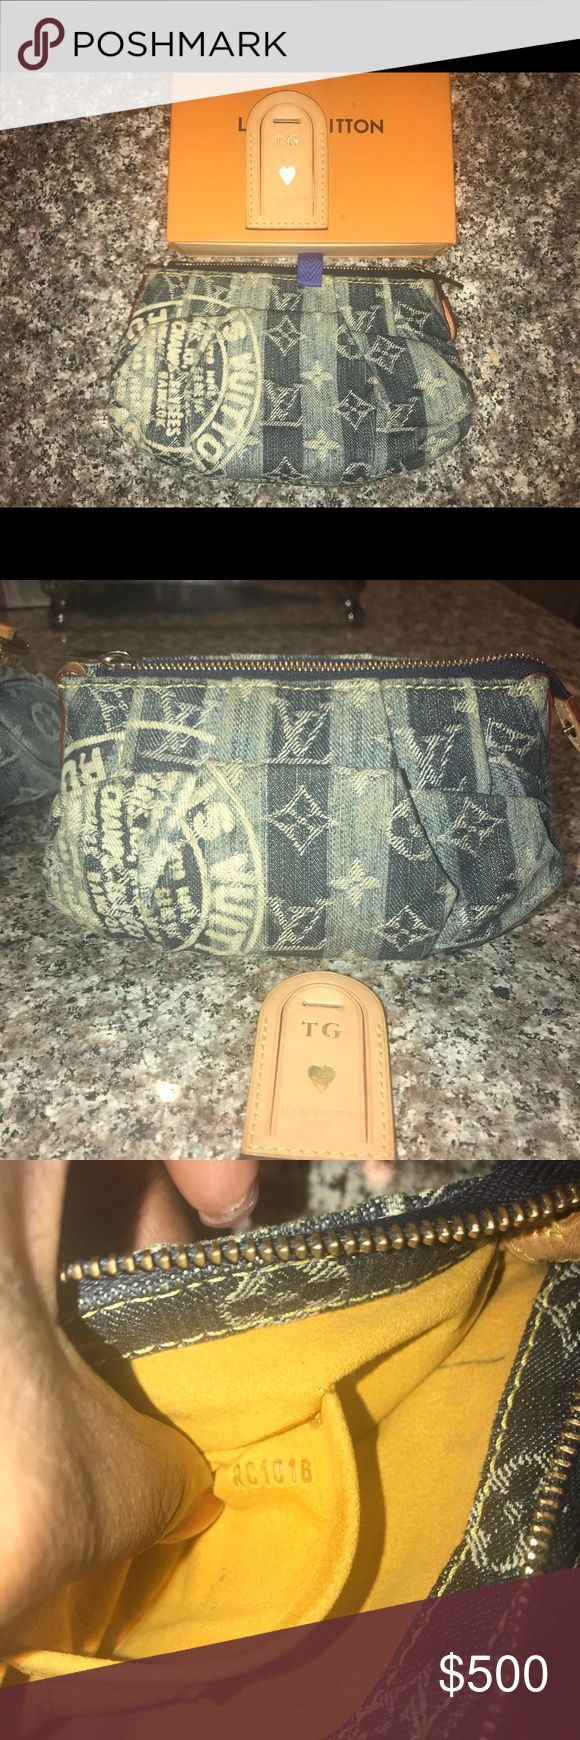 "Lois Vuitton Denim Stripe Cruise TROUSSE RAYE RARE Louis Vuitton Monogram Denim Cruise TROUSSE RAYE RARE  Most Wanted!!  ❤️ has a side snap that can attach wristlet strap 🧡	W7.5""×H3.9""×D1.2"" ❤️Signature monogram blue denim in a striped pattern with an iconic ""Trunks & Bags"" stamp!! ❤️Features one large top zipper main compartment and one small sidewall pouch inside!! ❤️Classic and shiny, golden toned Louis Vuitton engraved brass hardware throughout!! ❤️Normal signs of wear.  Light pen mark…"